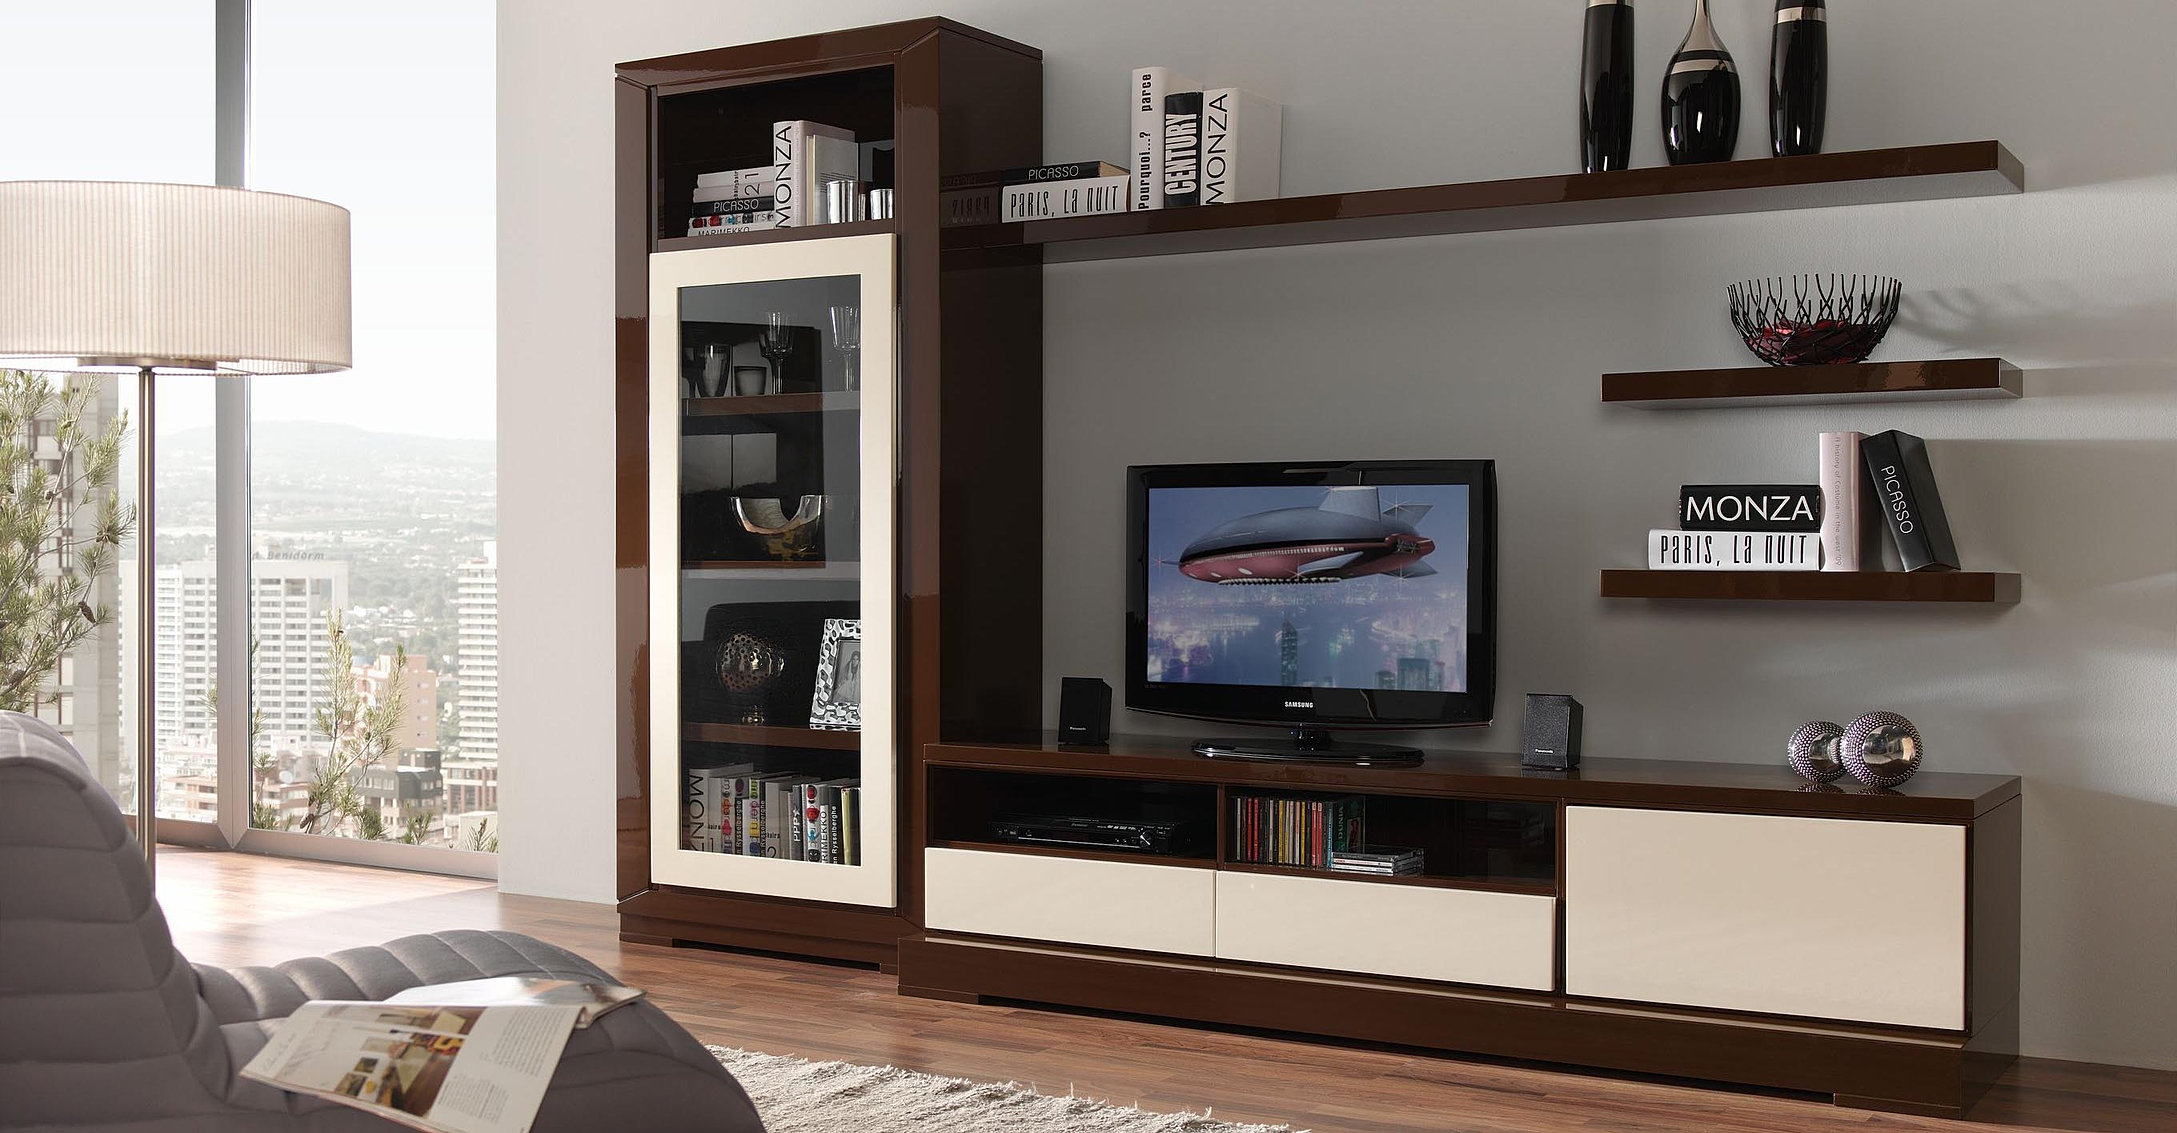 Muebles tv dise os exclusivos en muebles monen madrid for Factory de muebles en madrid